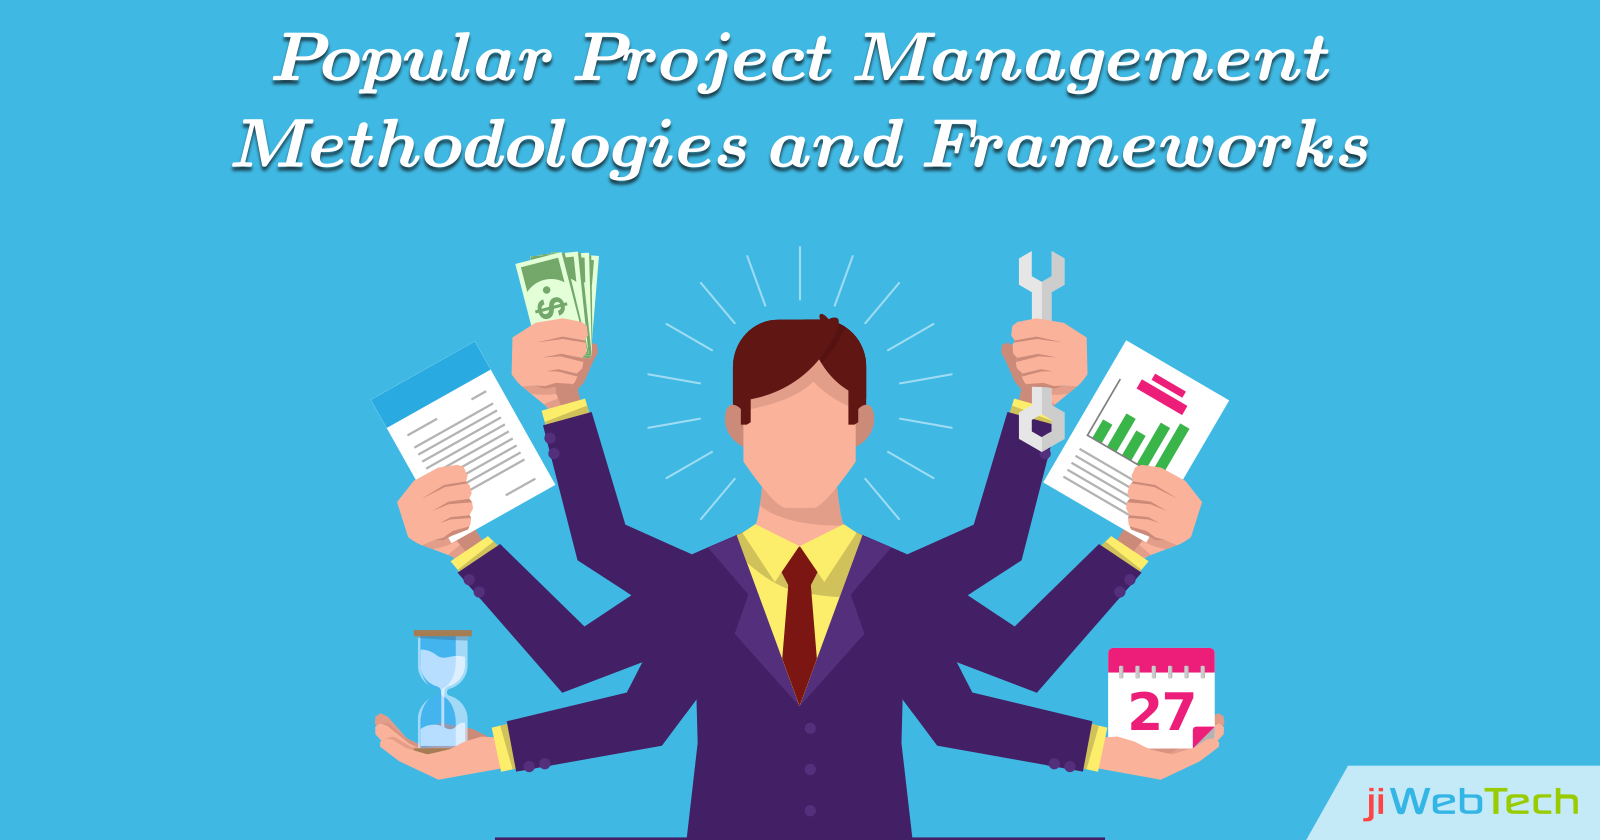 Popular Project Management Methodologies and Frameworks